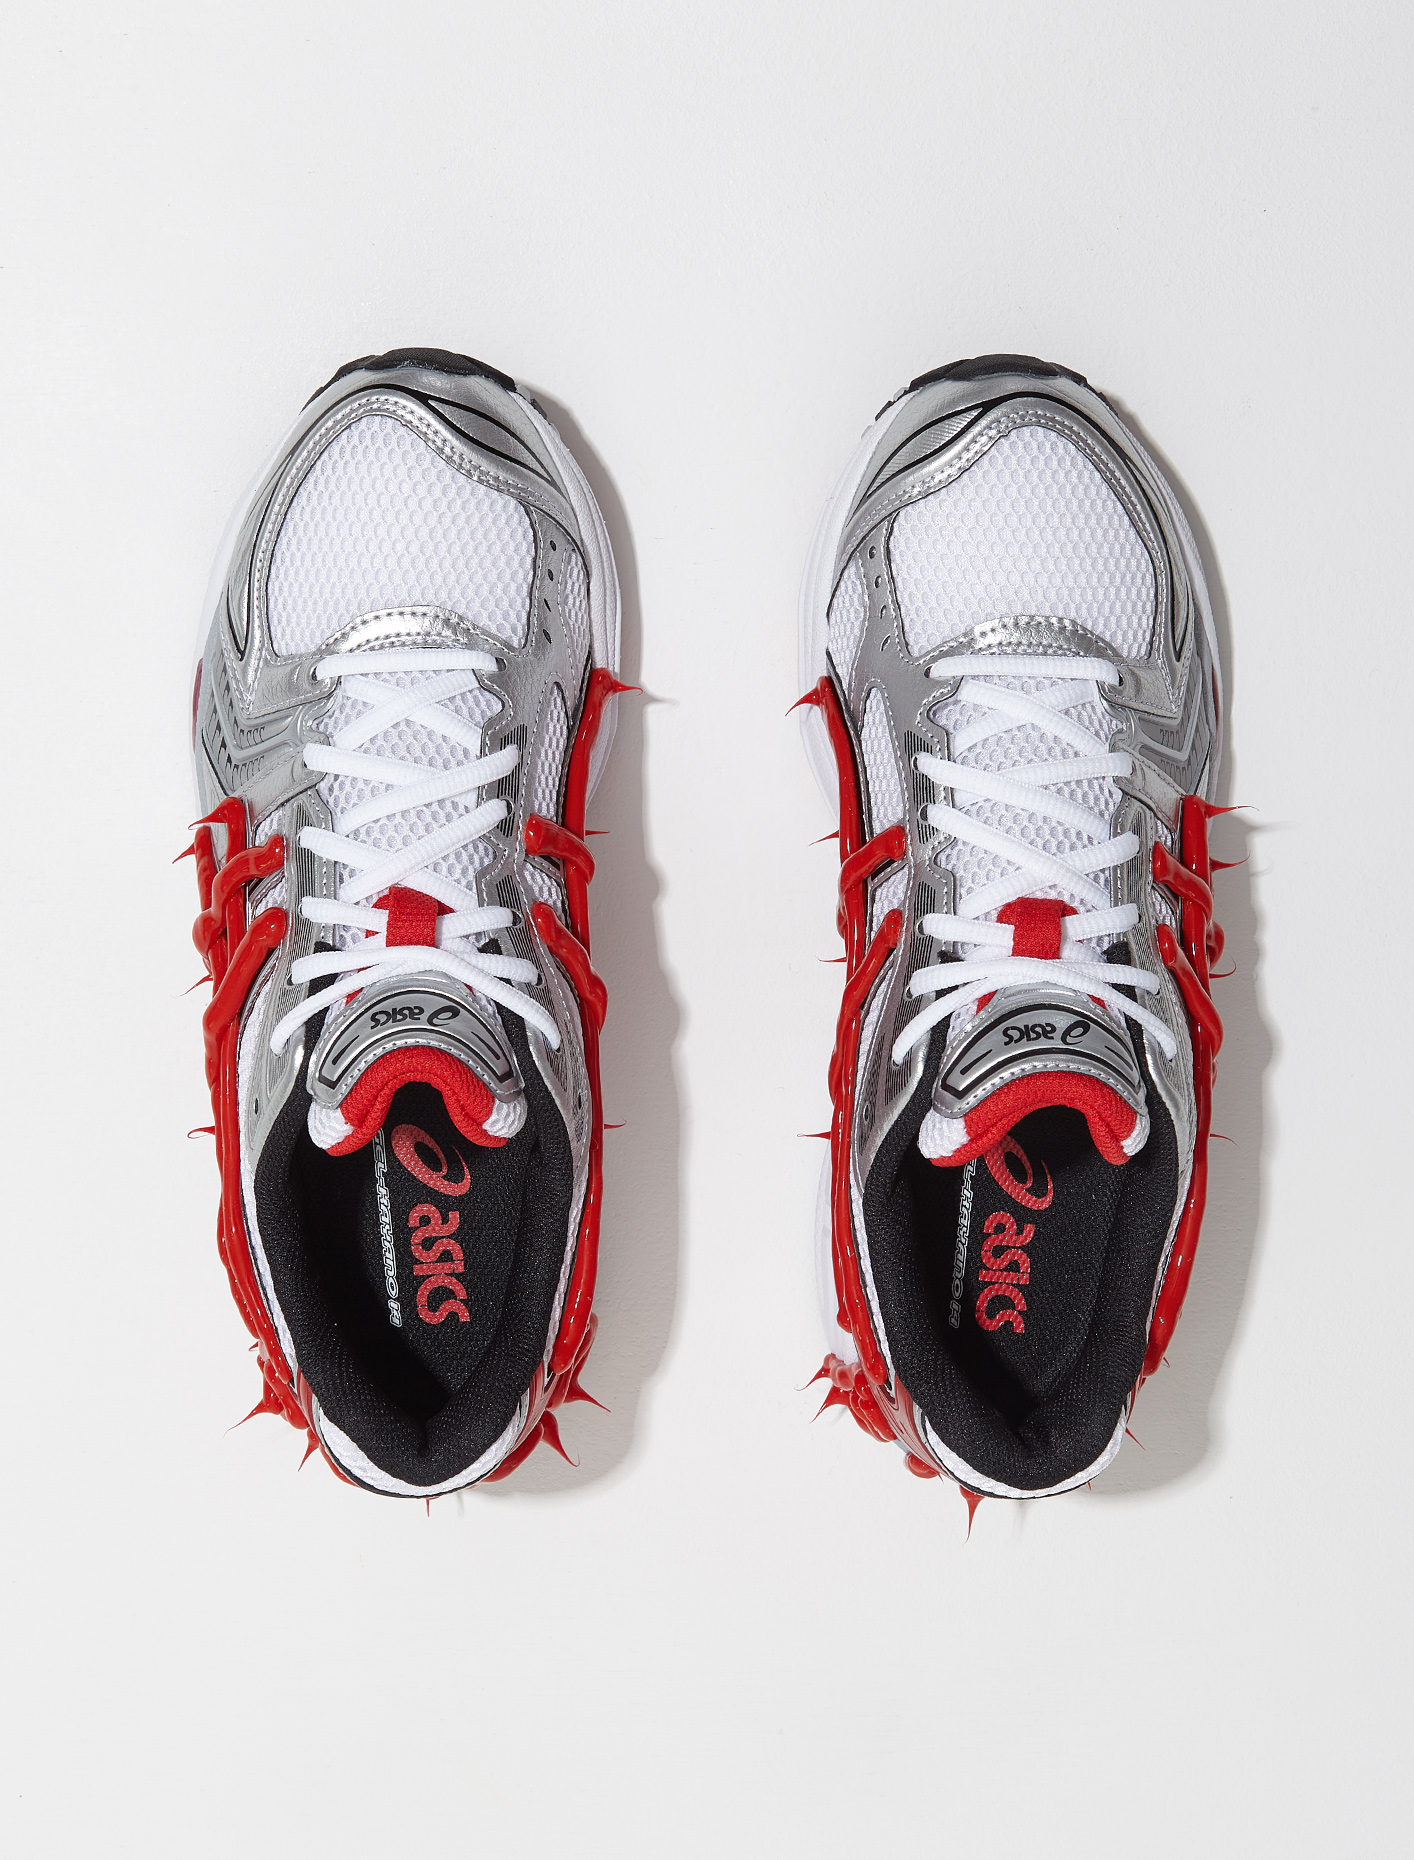 1201A019 103 ASICS GEL KAYANO 14 WHITE CLASSIC RED